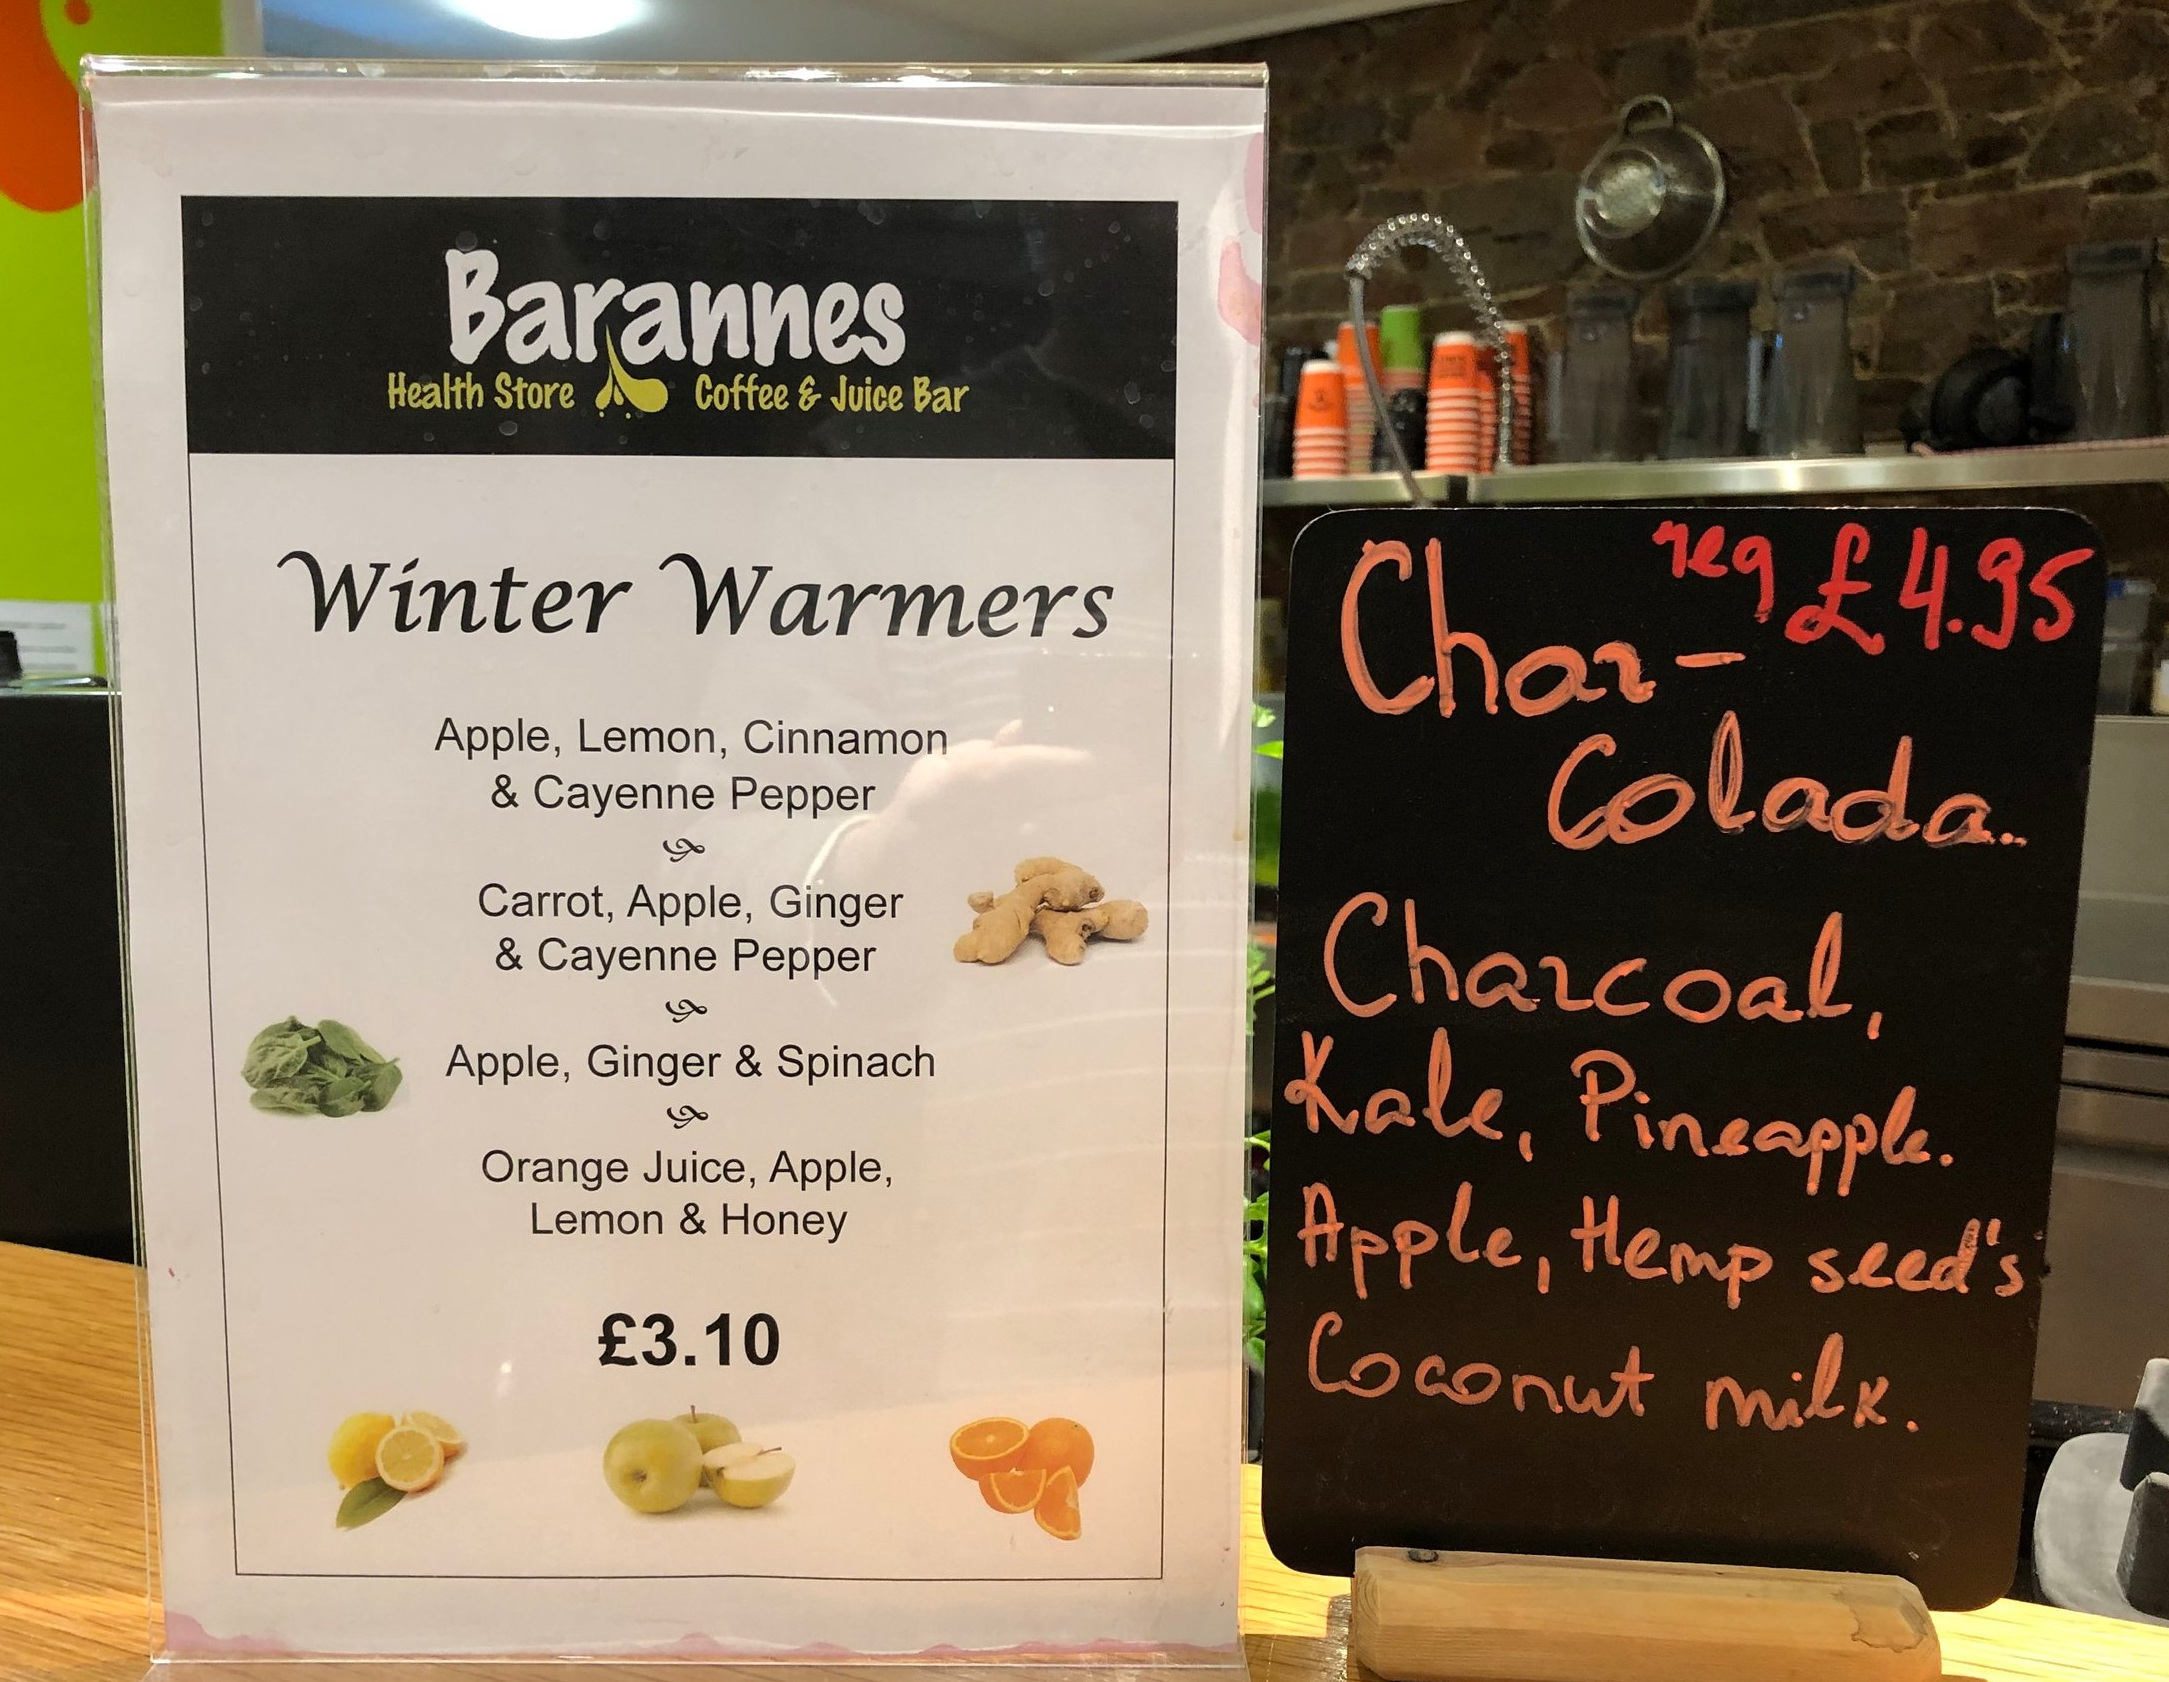 Winter Warmers and the Char-Colada are available at both our Juice Bars